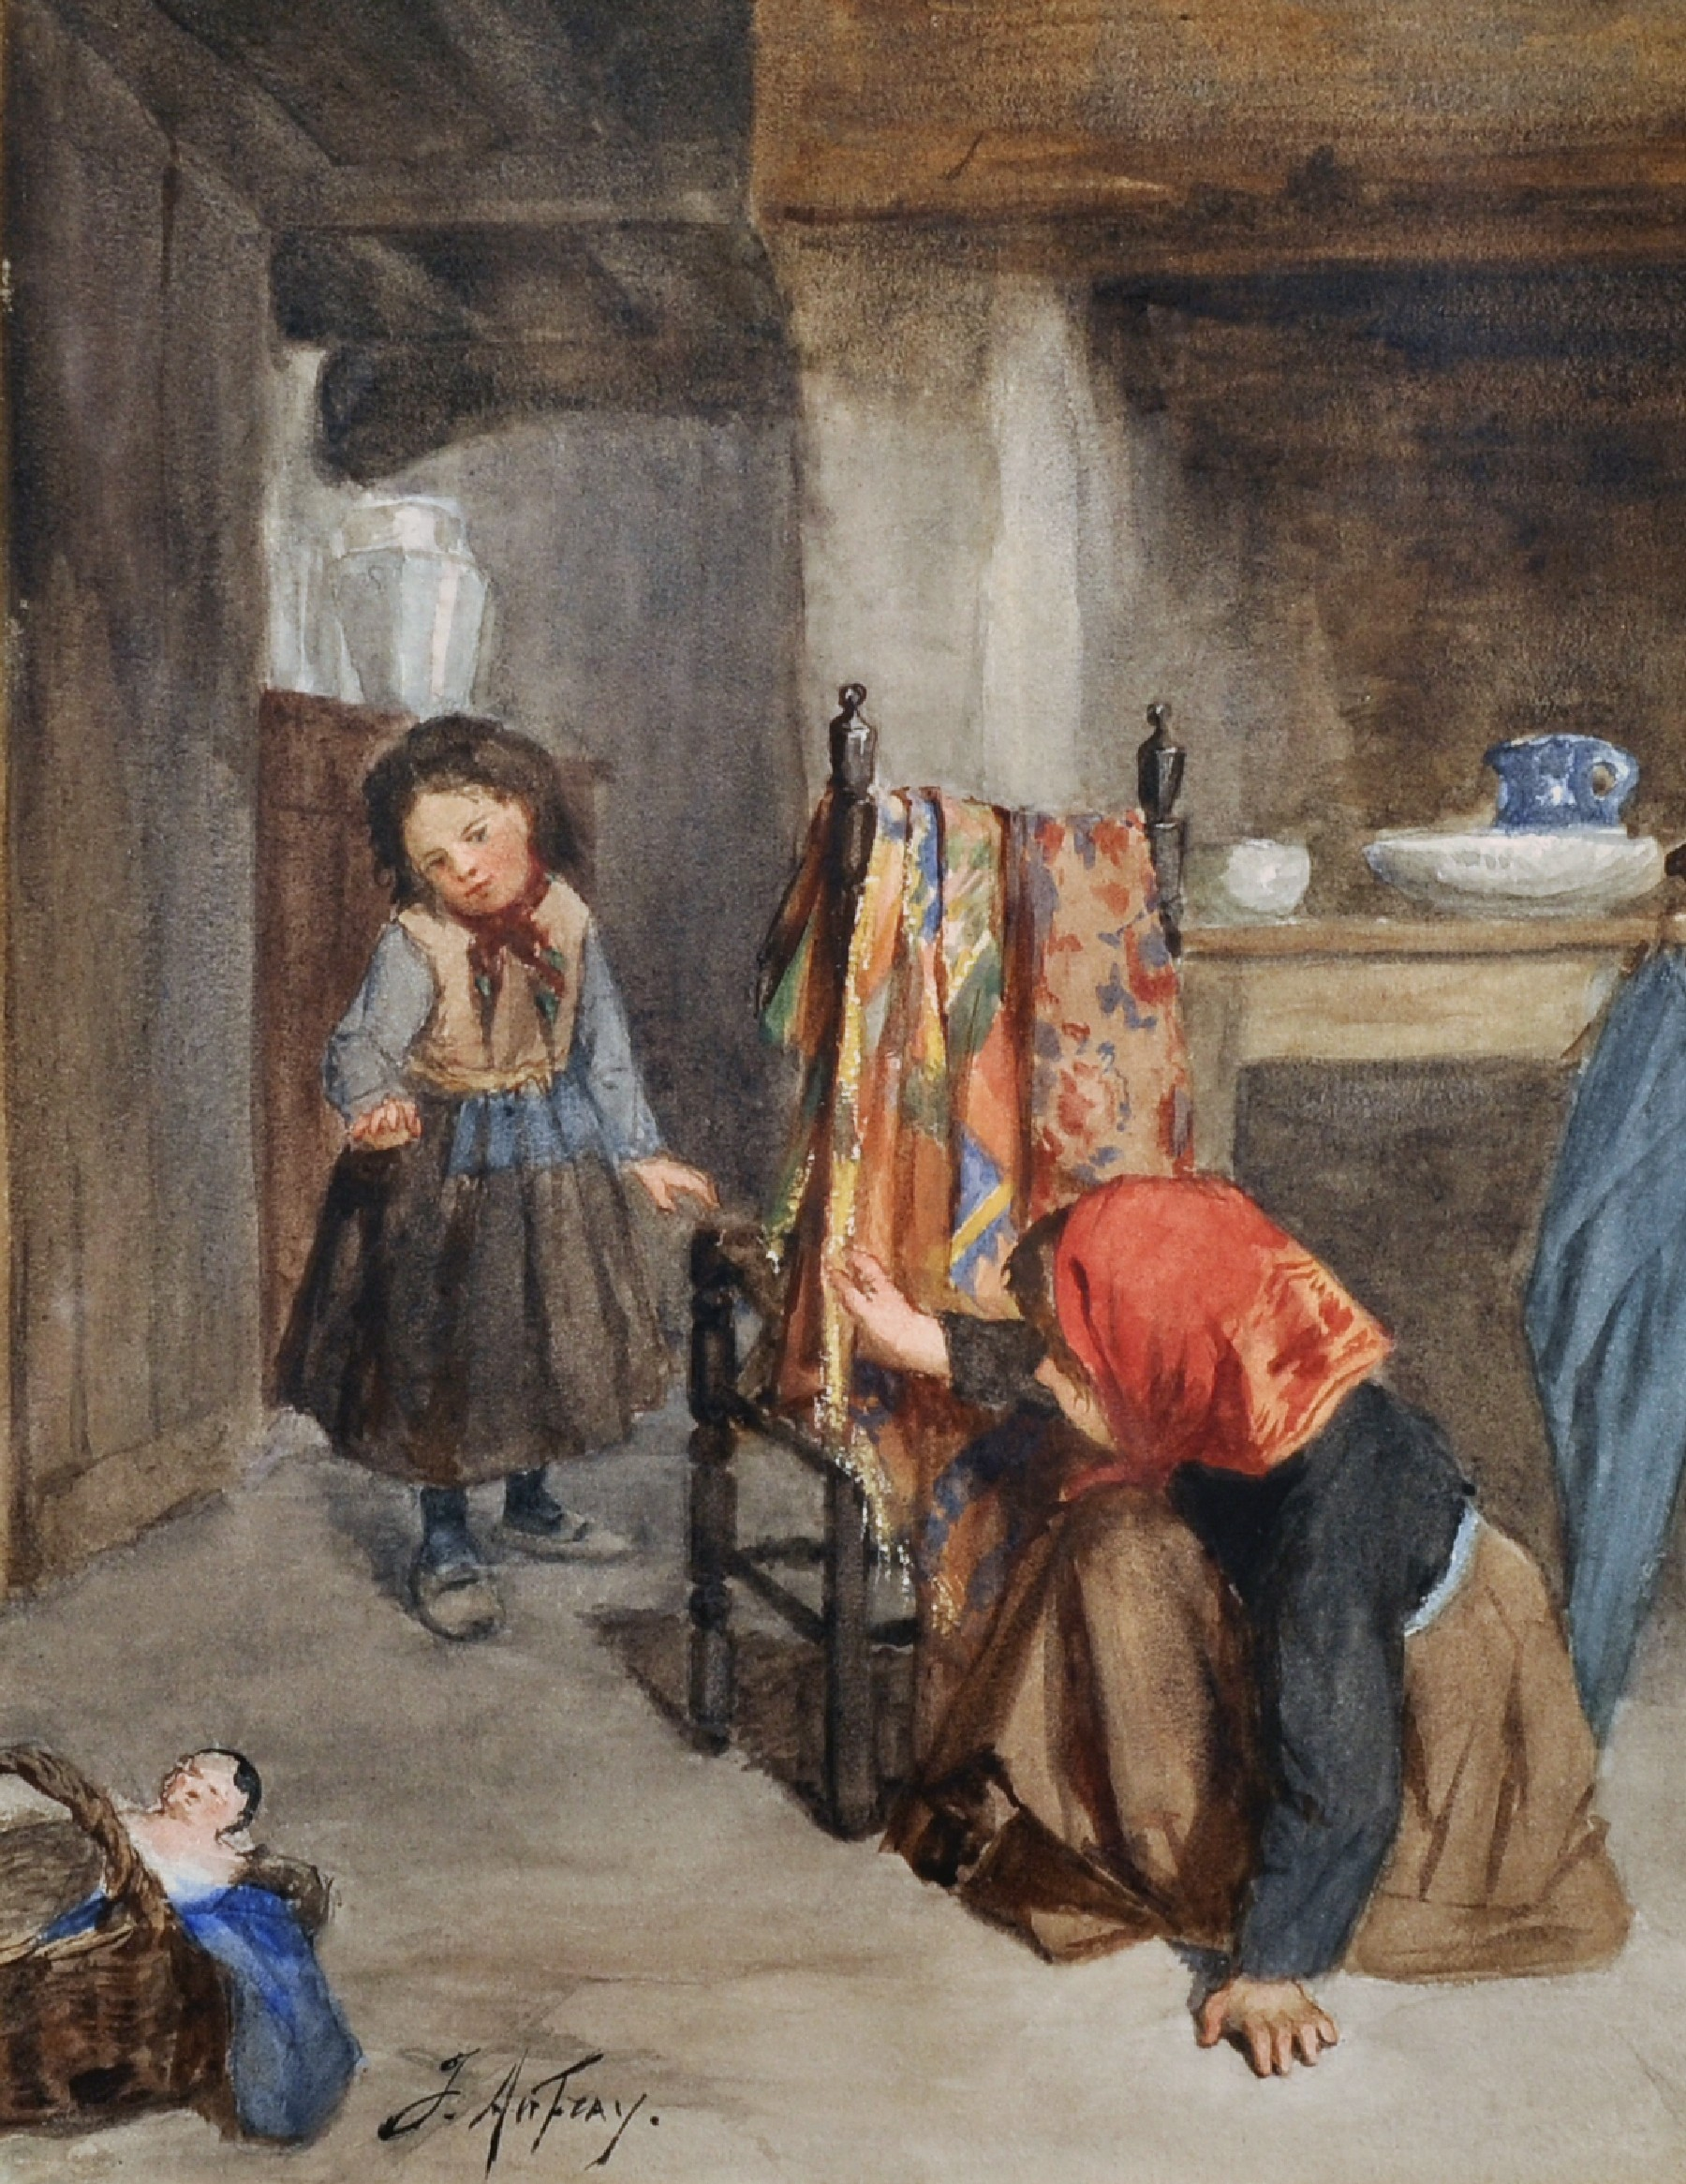 Joseph Athanase Aufray (1836-c.1885) French. Two Children Playing Hide and Seek, Watercolour,